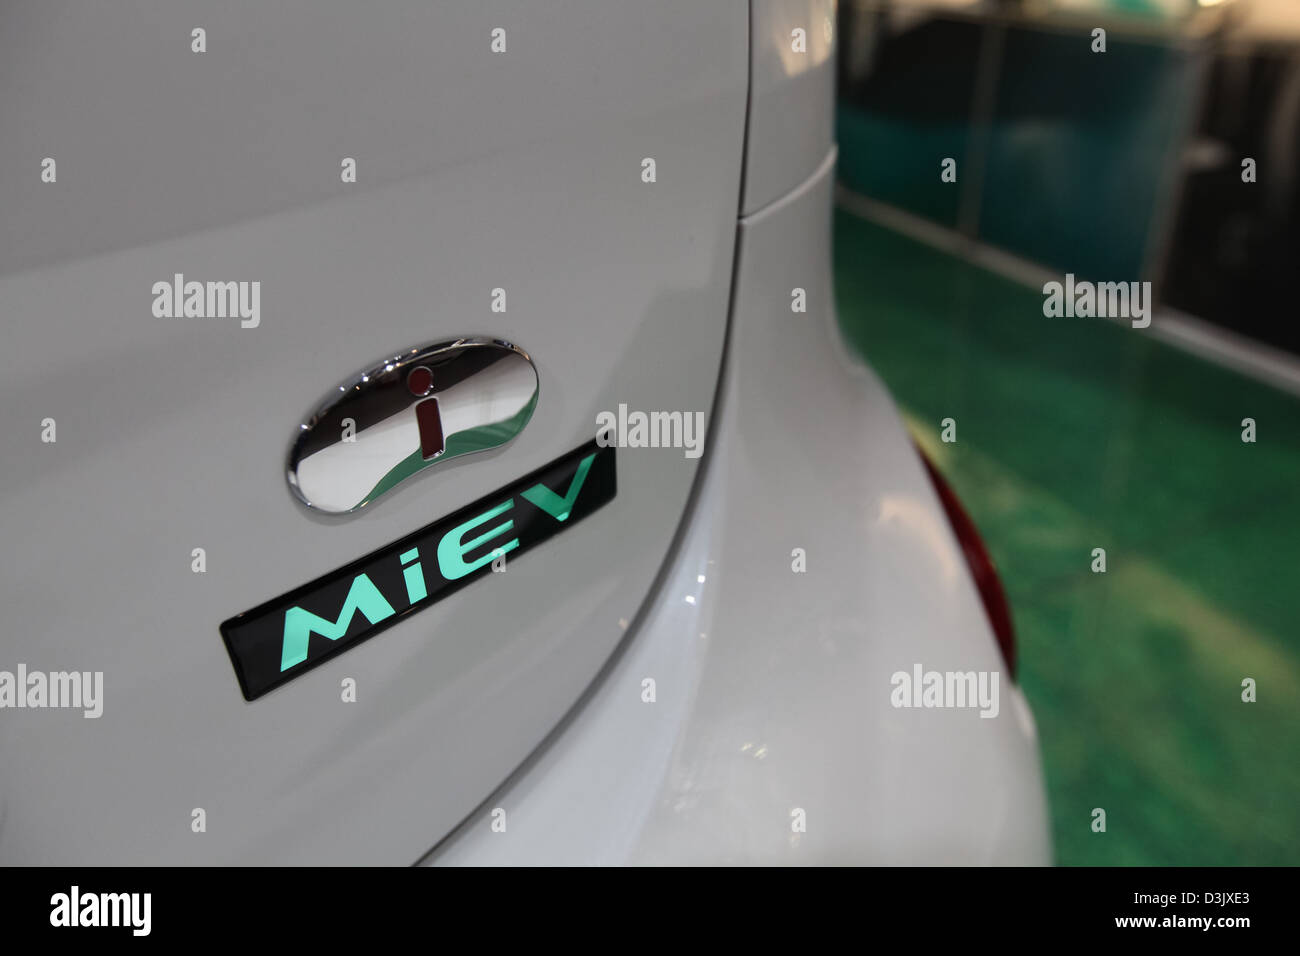 Mitsubishi i-MiEV hatchback electric car - Stock Image